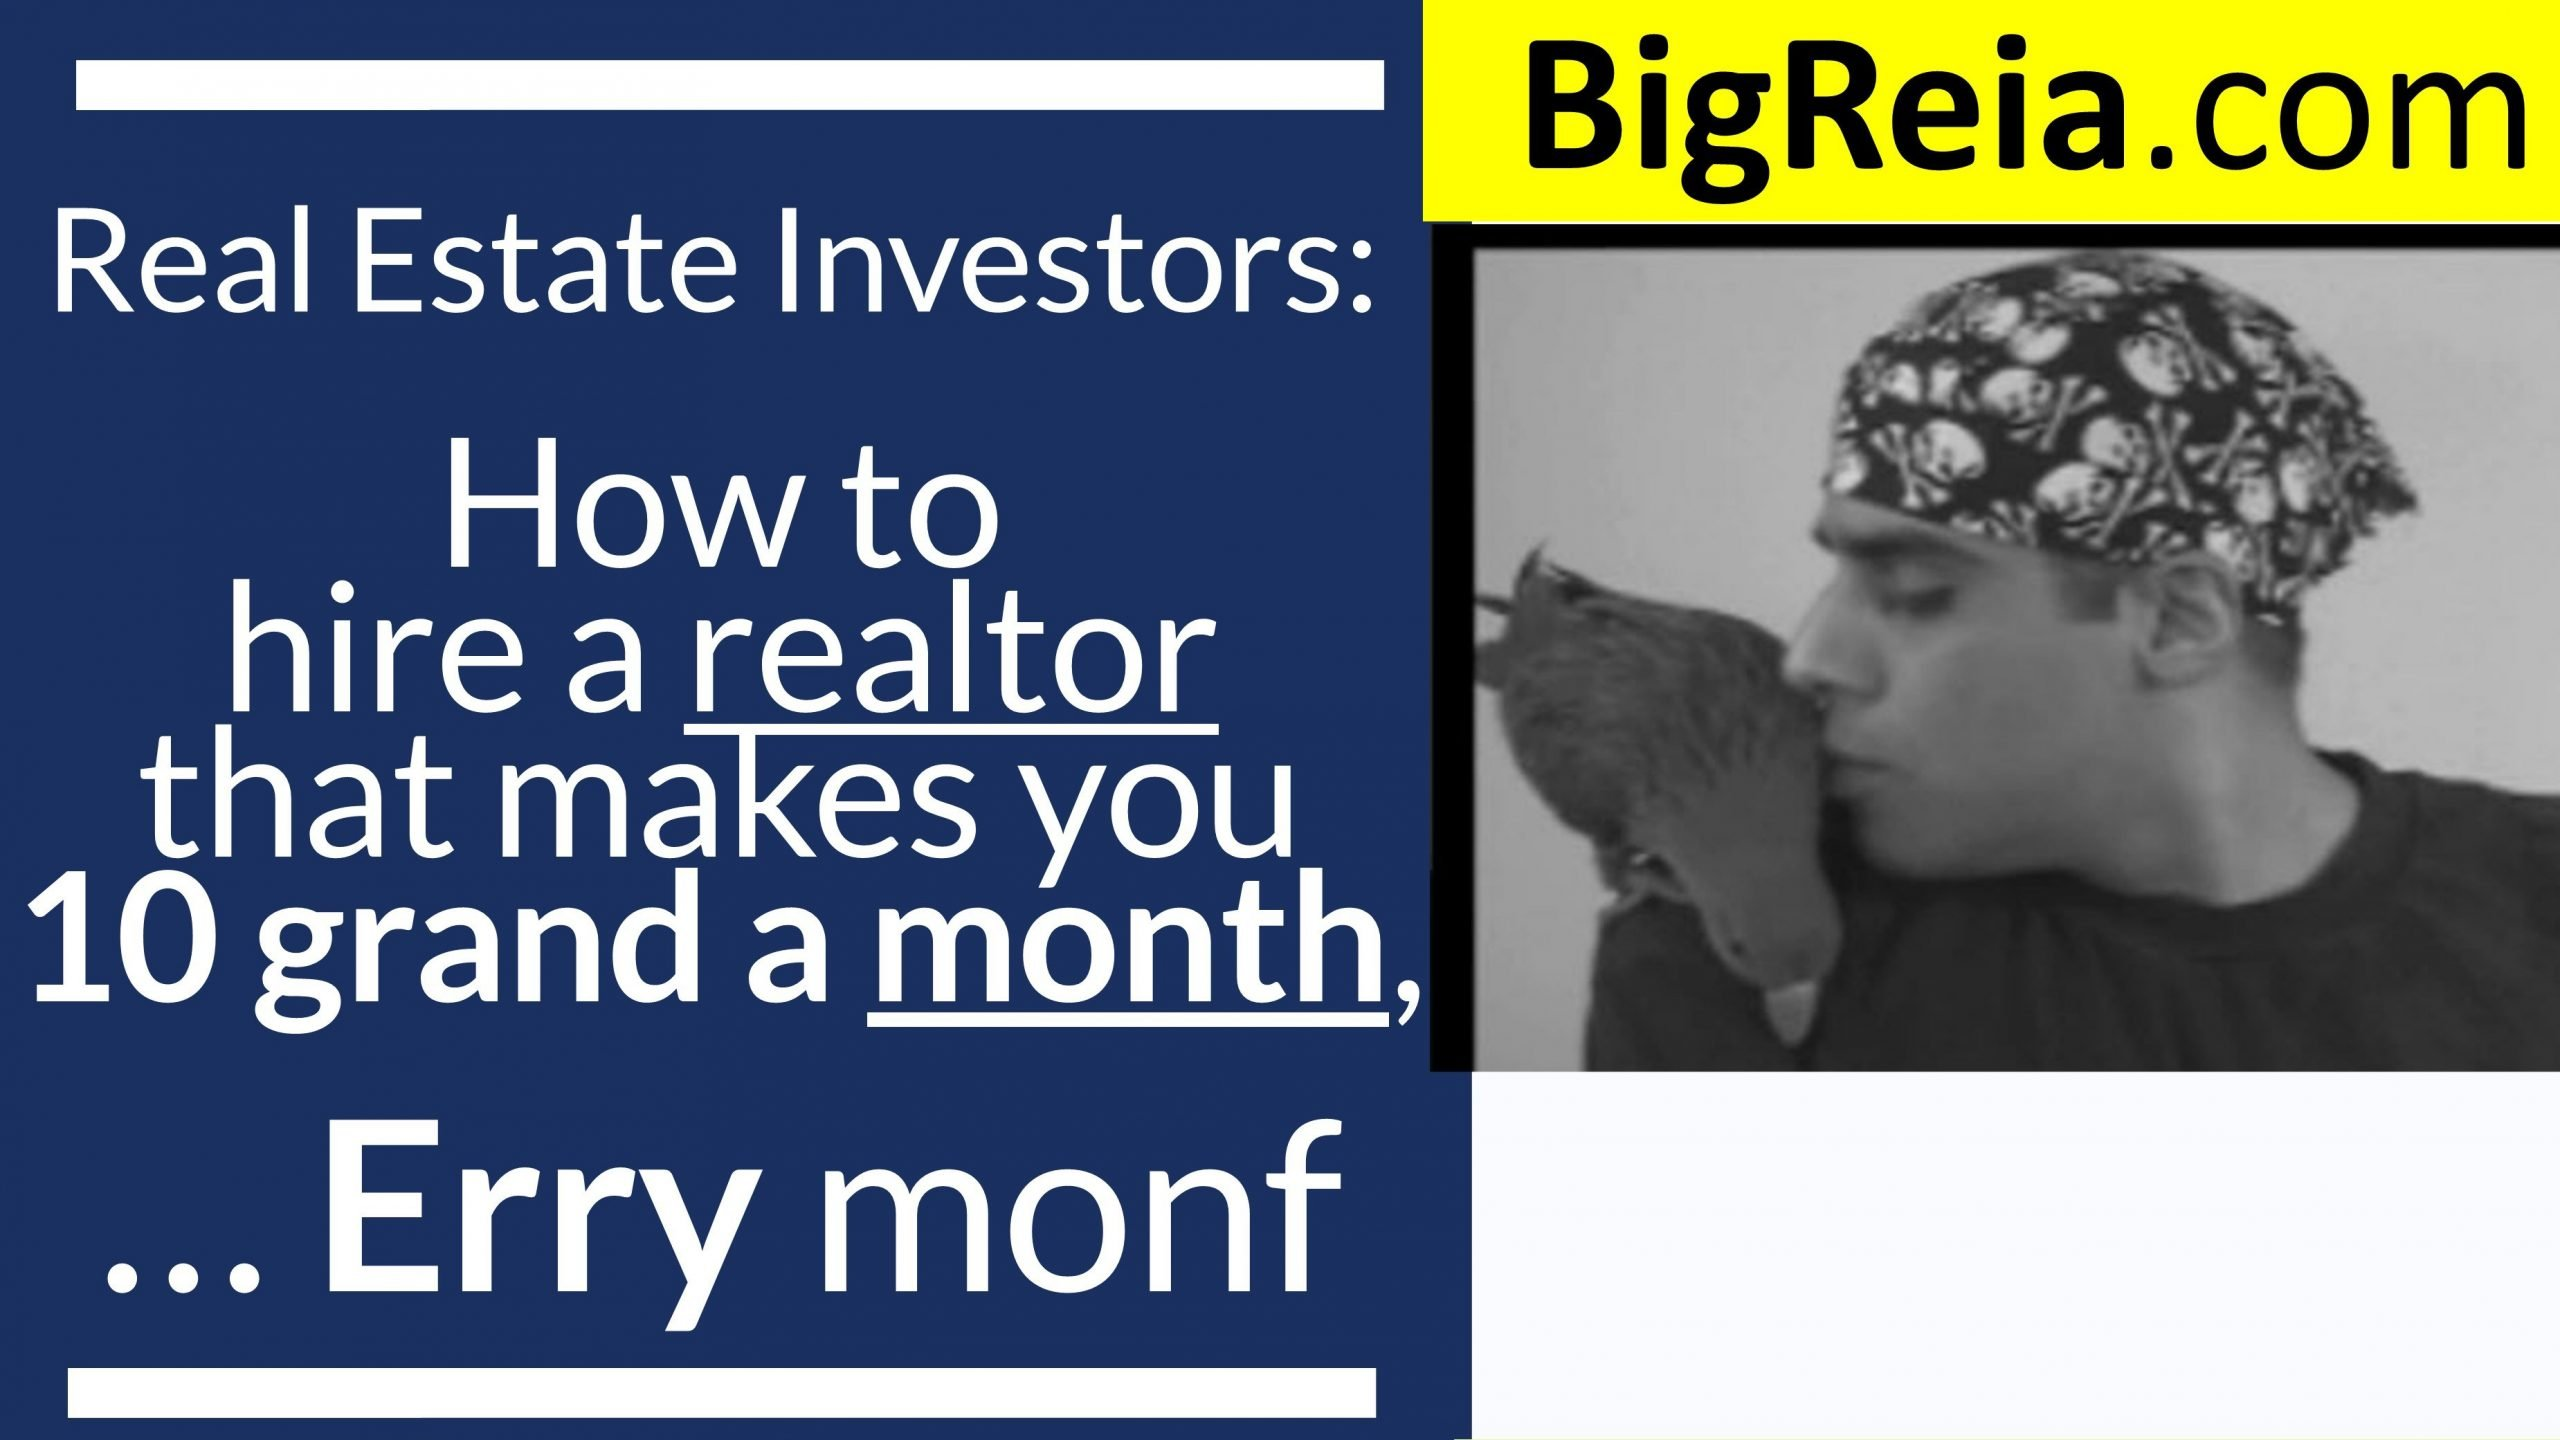 Real estate investors: How to hire a realtor that makes you $10,000 a month, zero down with no loans.